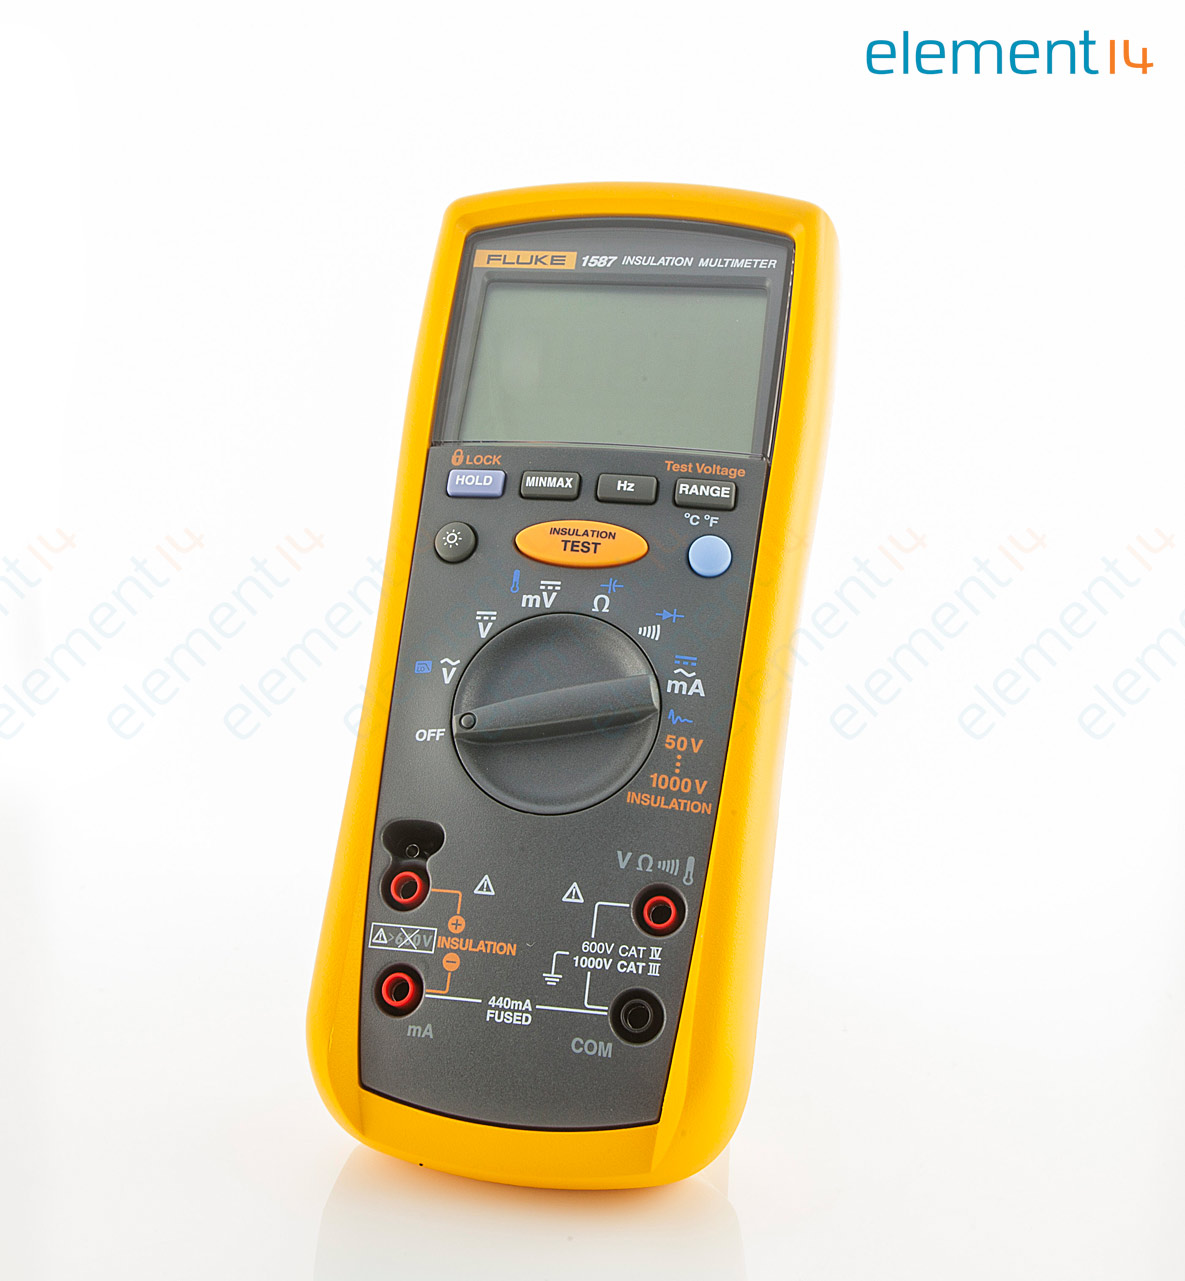 fluke 1587 fluke insulation digital multimeter 6000 count true rms rh my element14 com Fluke Megger Meter fluke 1587 fc insulation multimeter manual